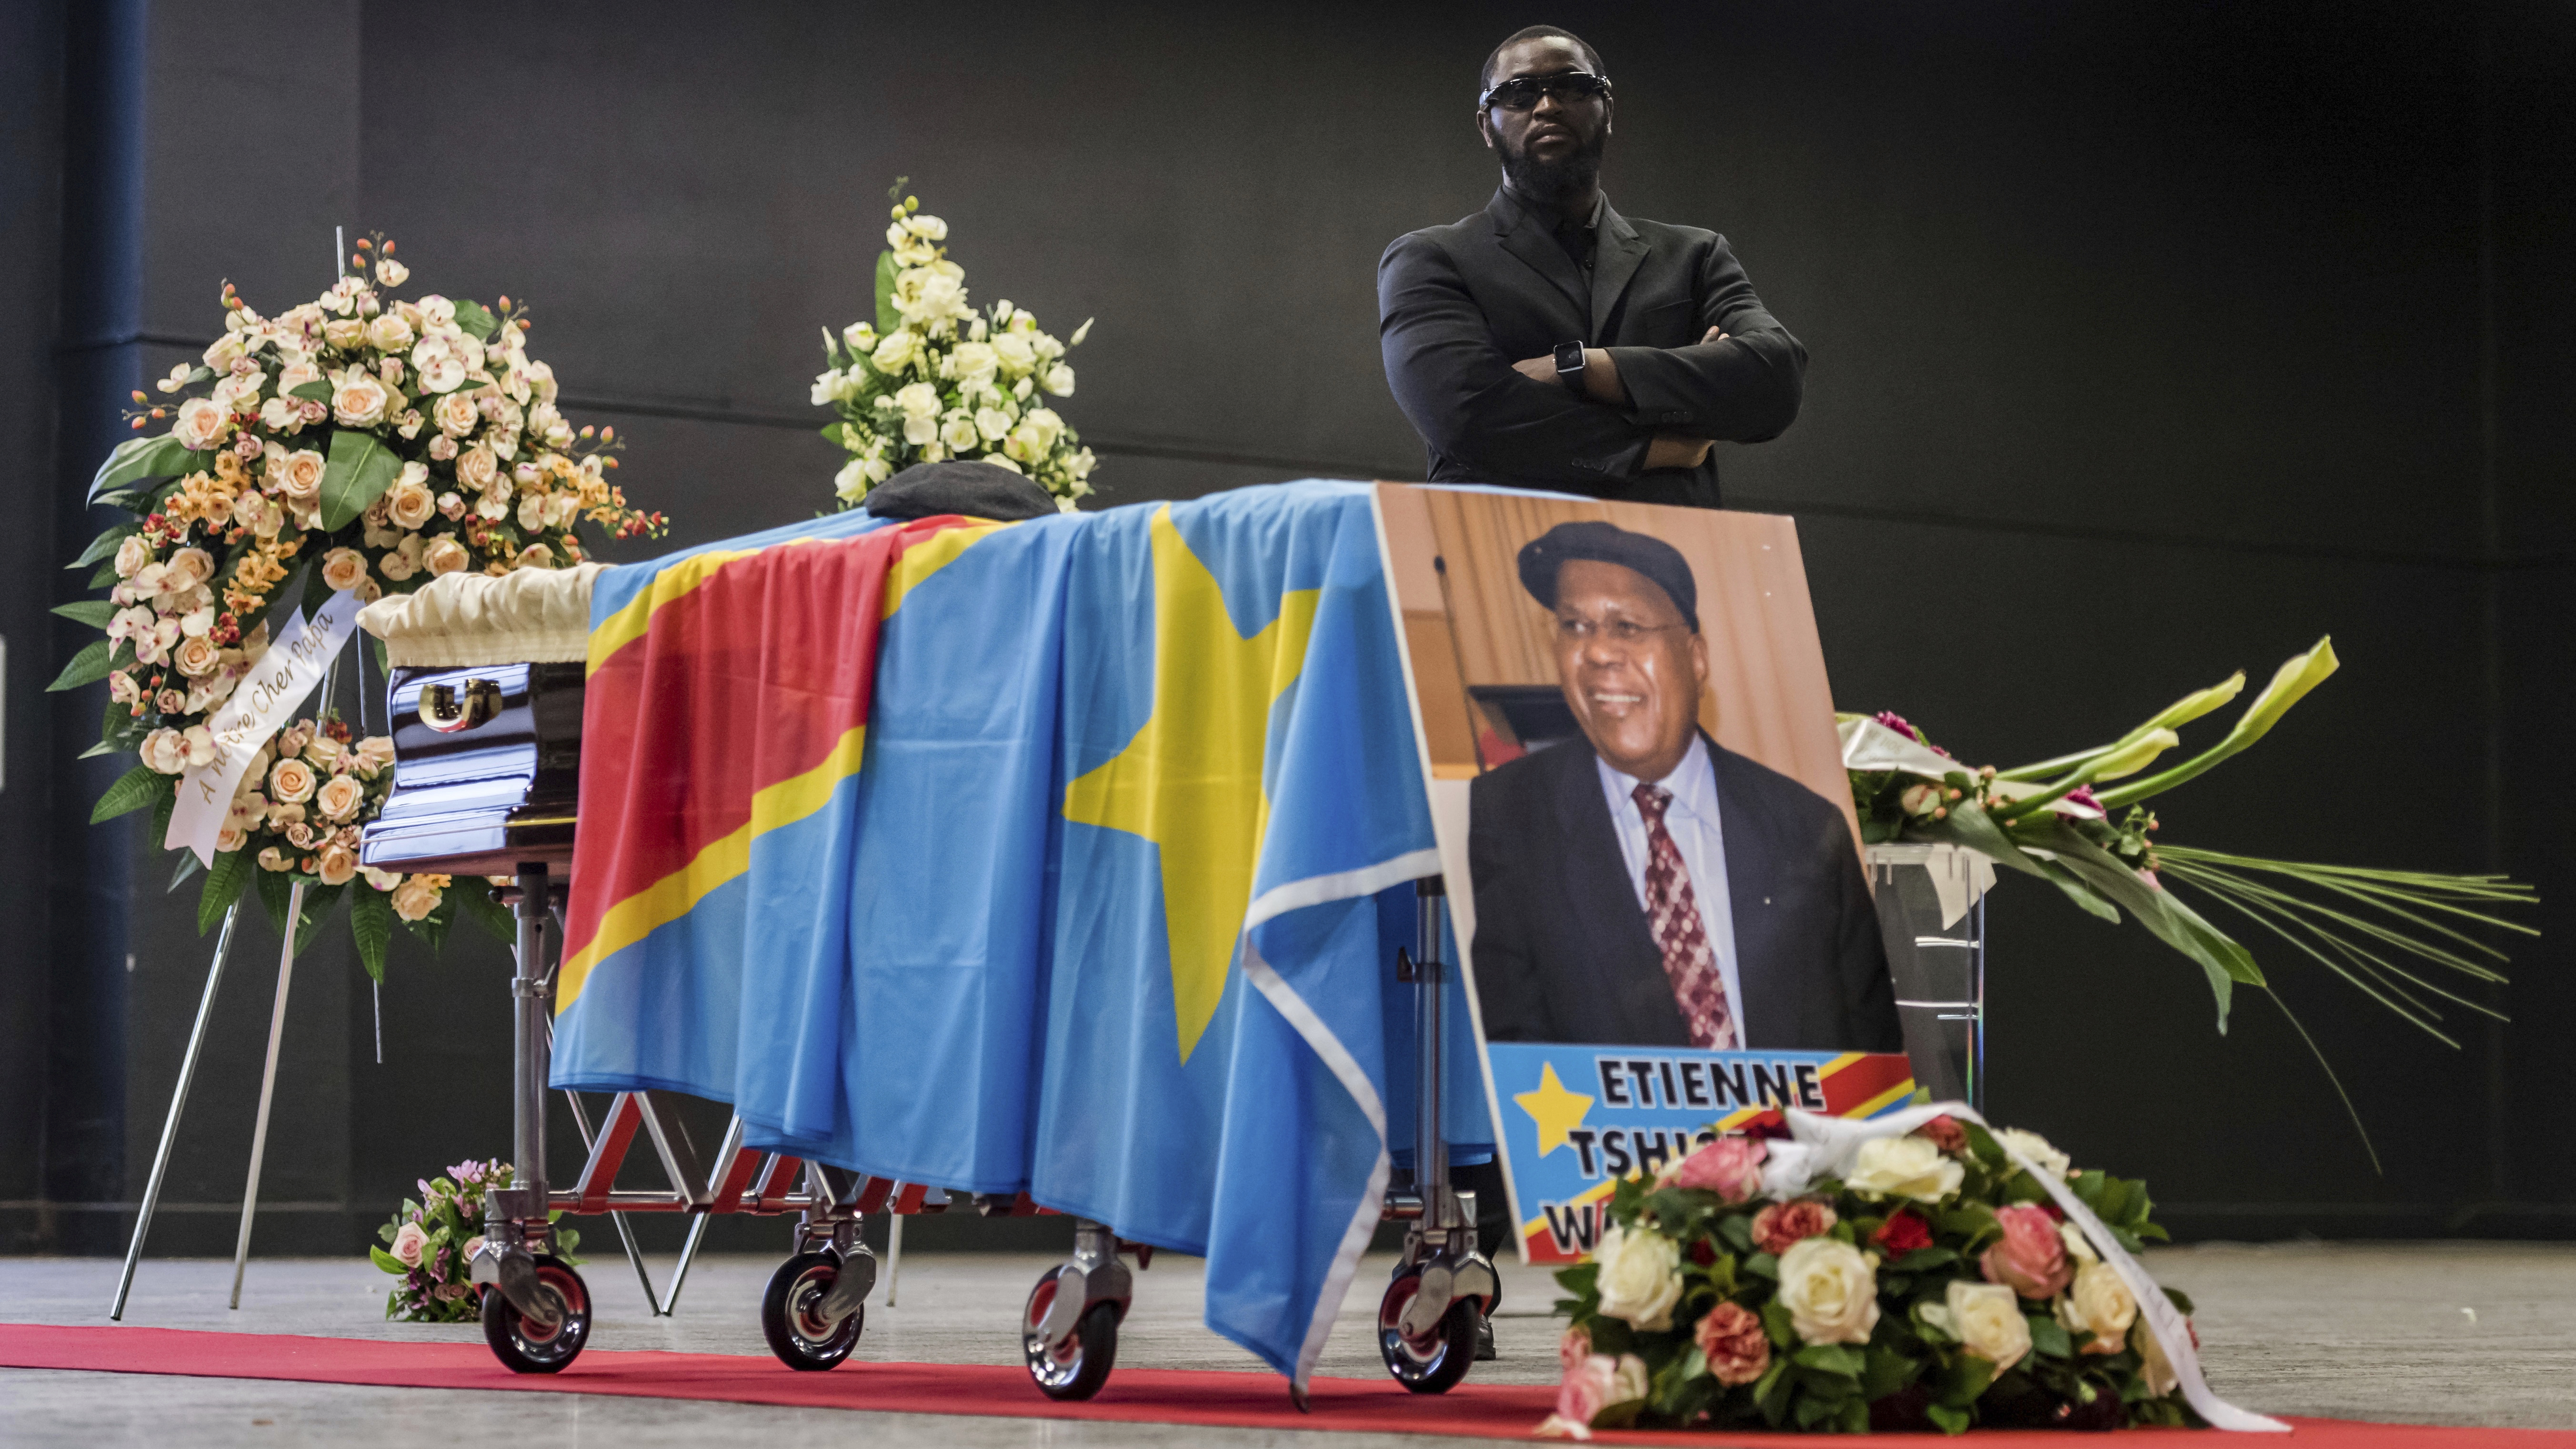 Deceased DR Congo opposition leader Etienne Tshisekedi yet to be buried as his funeral causes political controversy